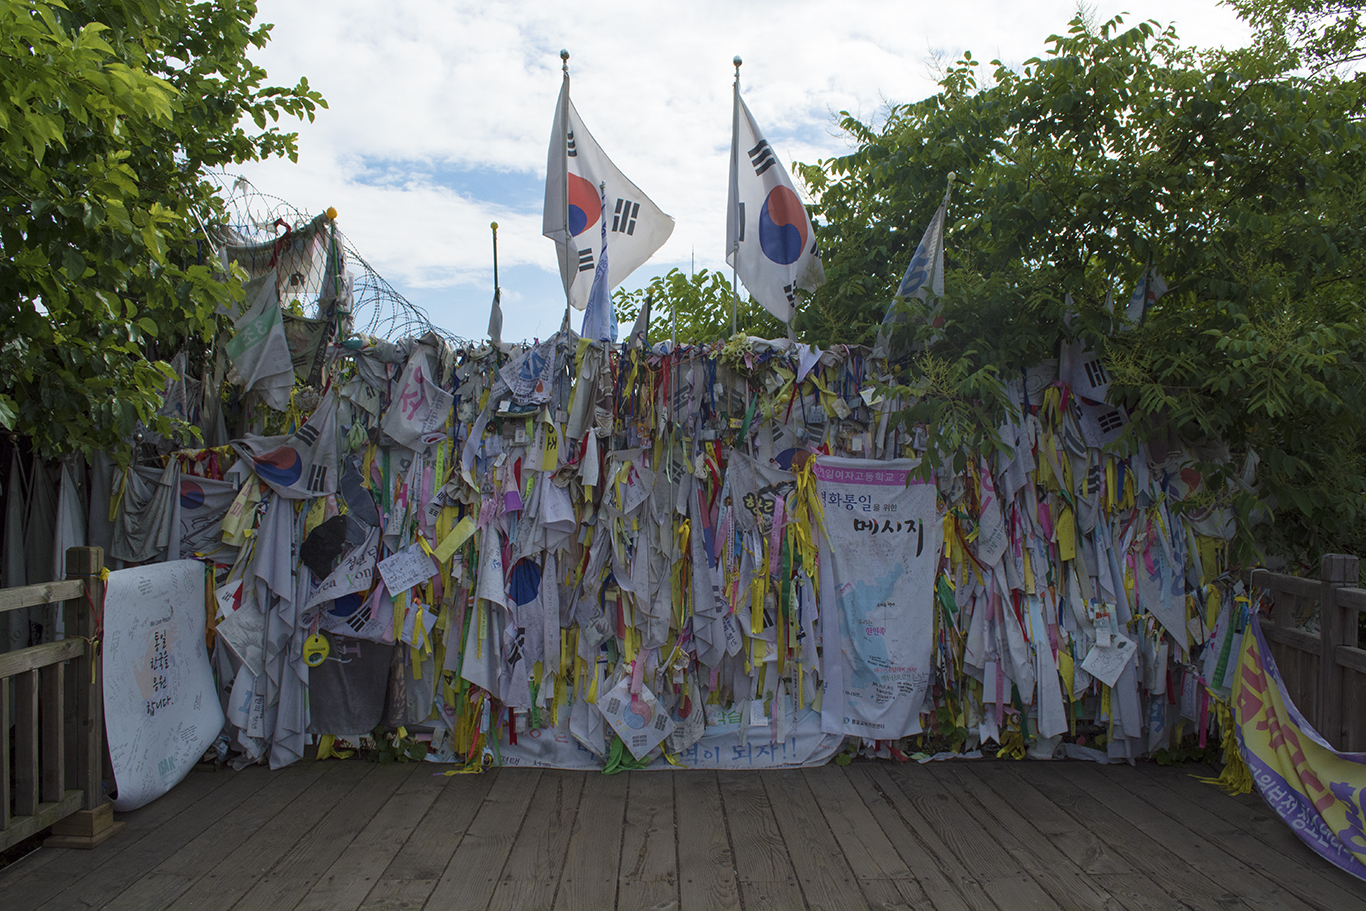 A monument to Korean Reunification at Imjingak Park, three miles from the Military Demarcation Line on the South Korean side.(CHRISTOPHER CAMERON/THE STATESMAN)